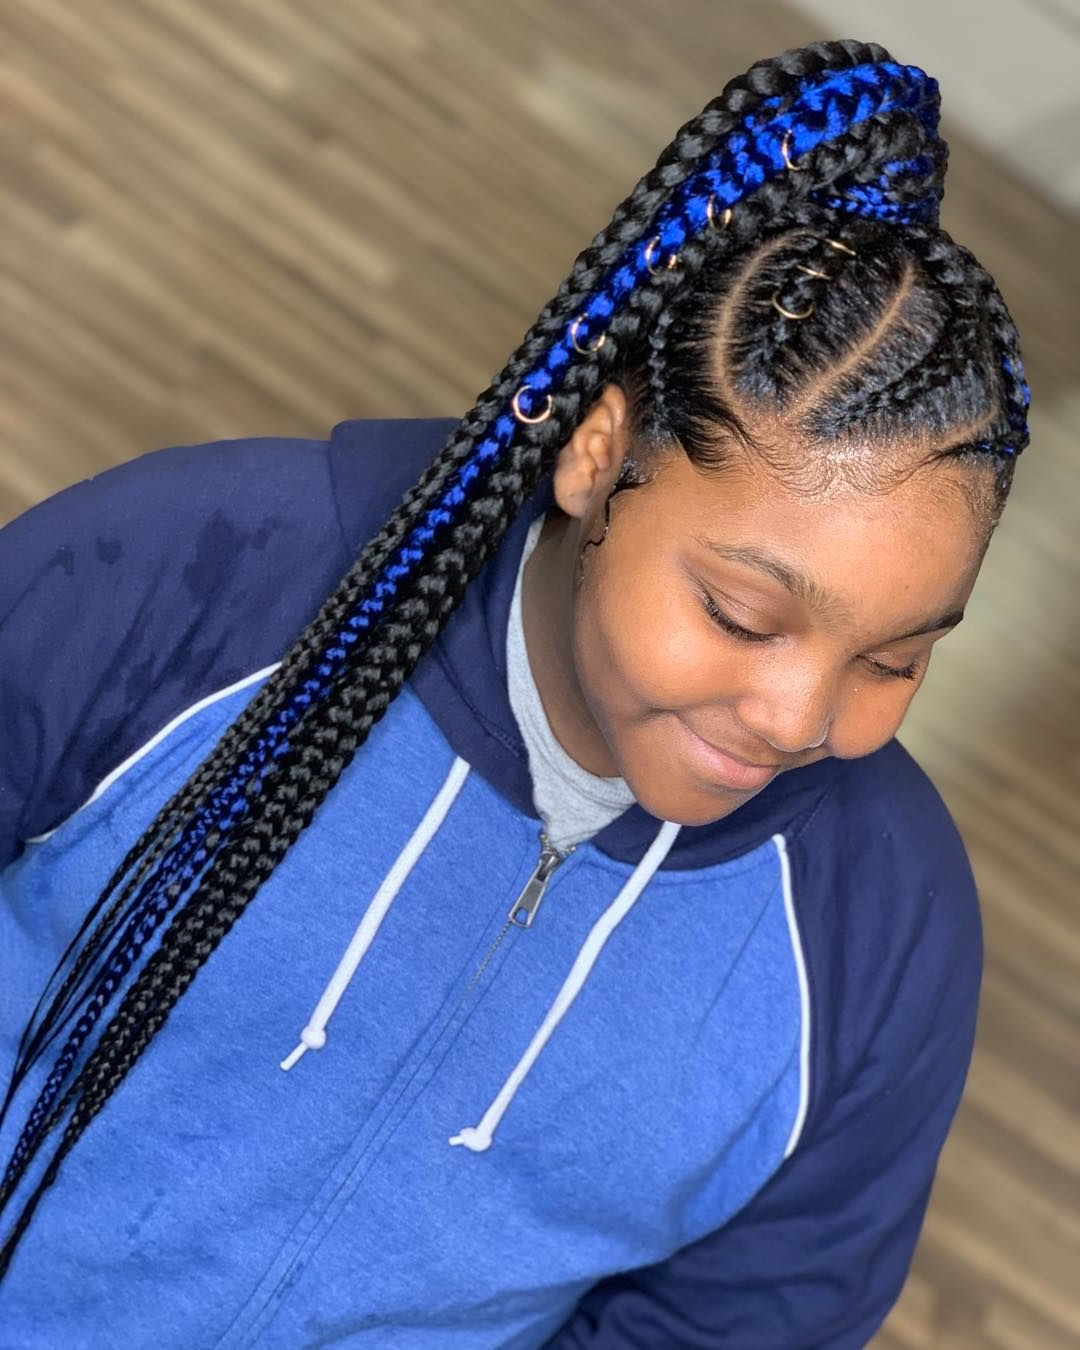 Widely Used Stylish Braids Ponytail Hairstyles With 30 Cute Braided Ponytail Hairstyles For Black Hair That Will Make (View 3 of 20)